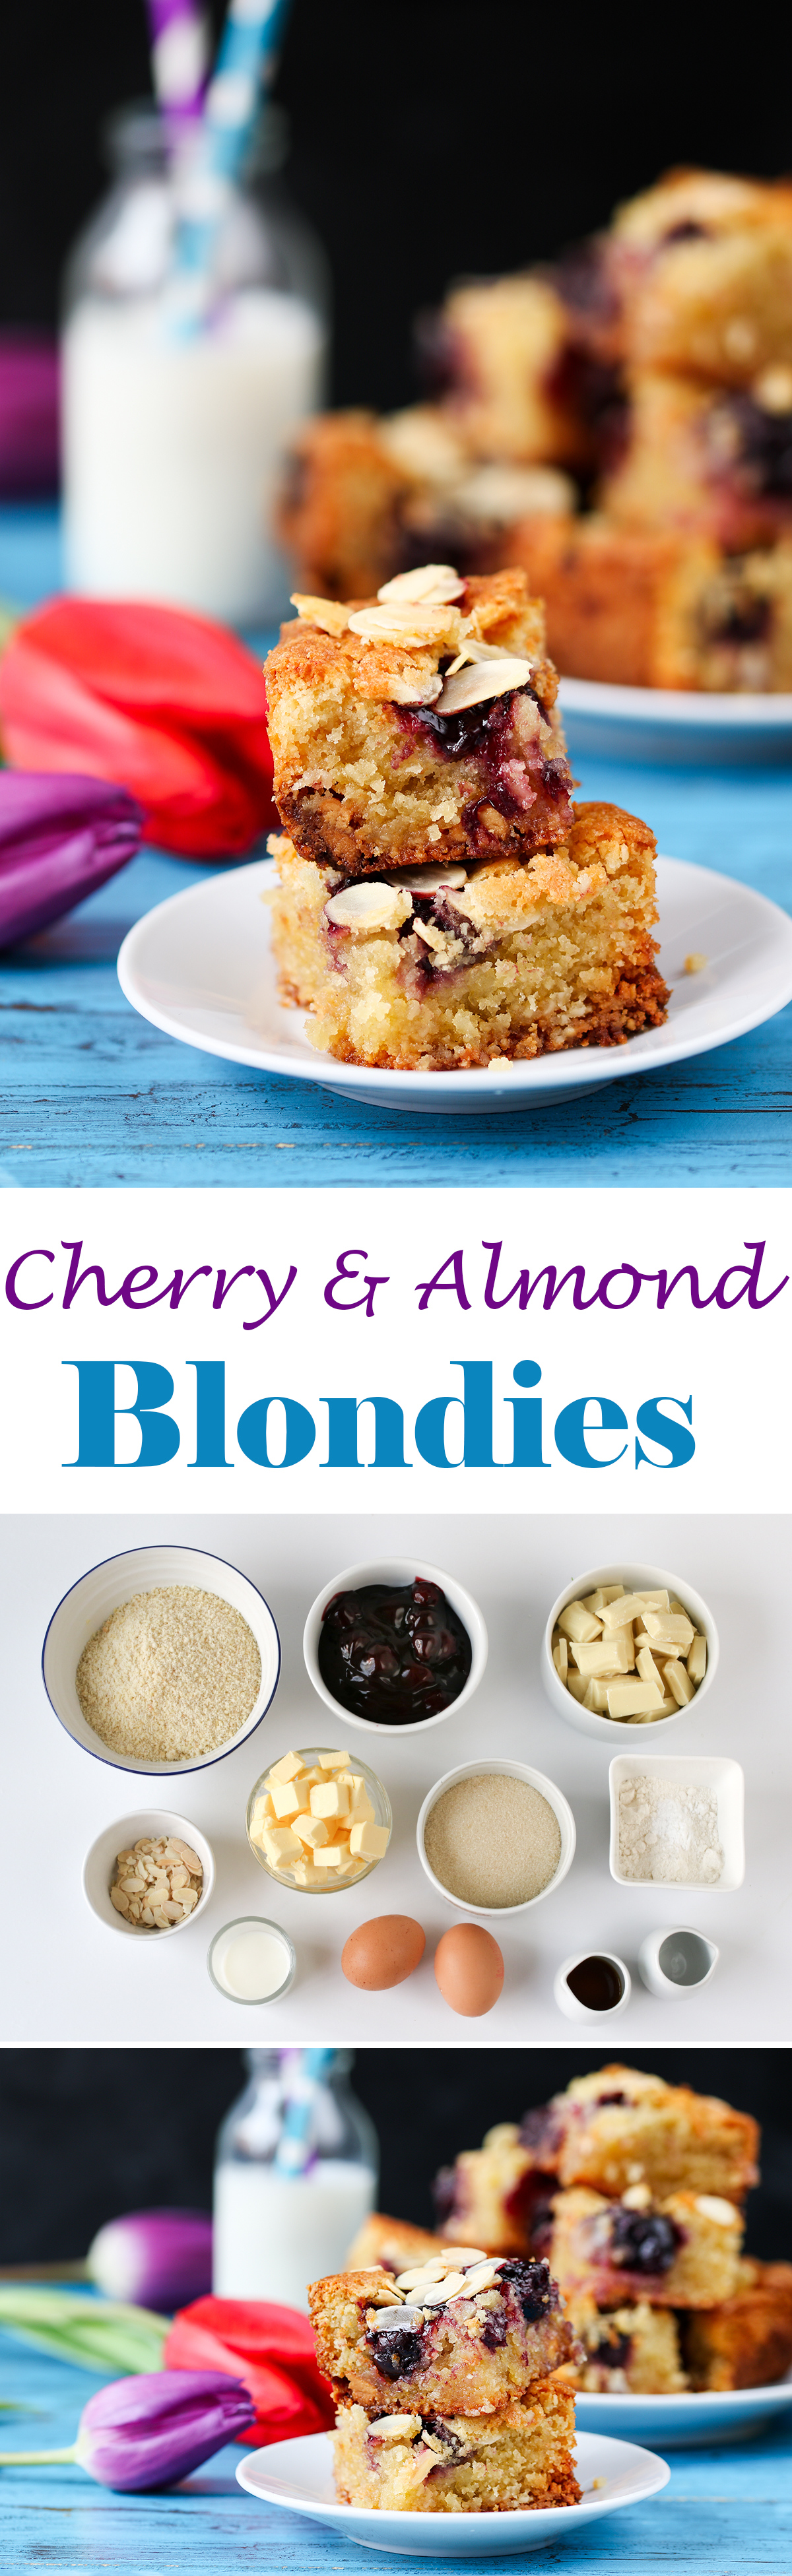 Cherry and Almond Blondies